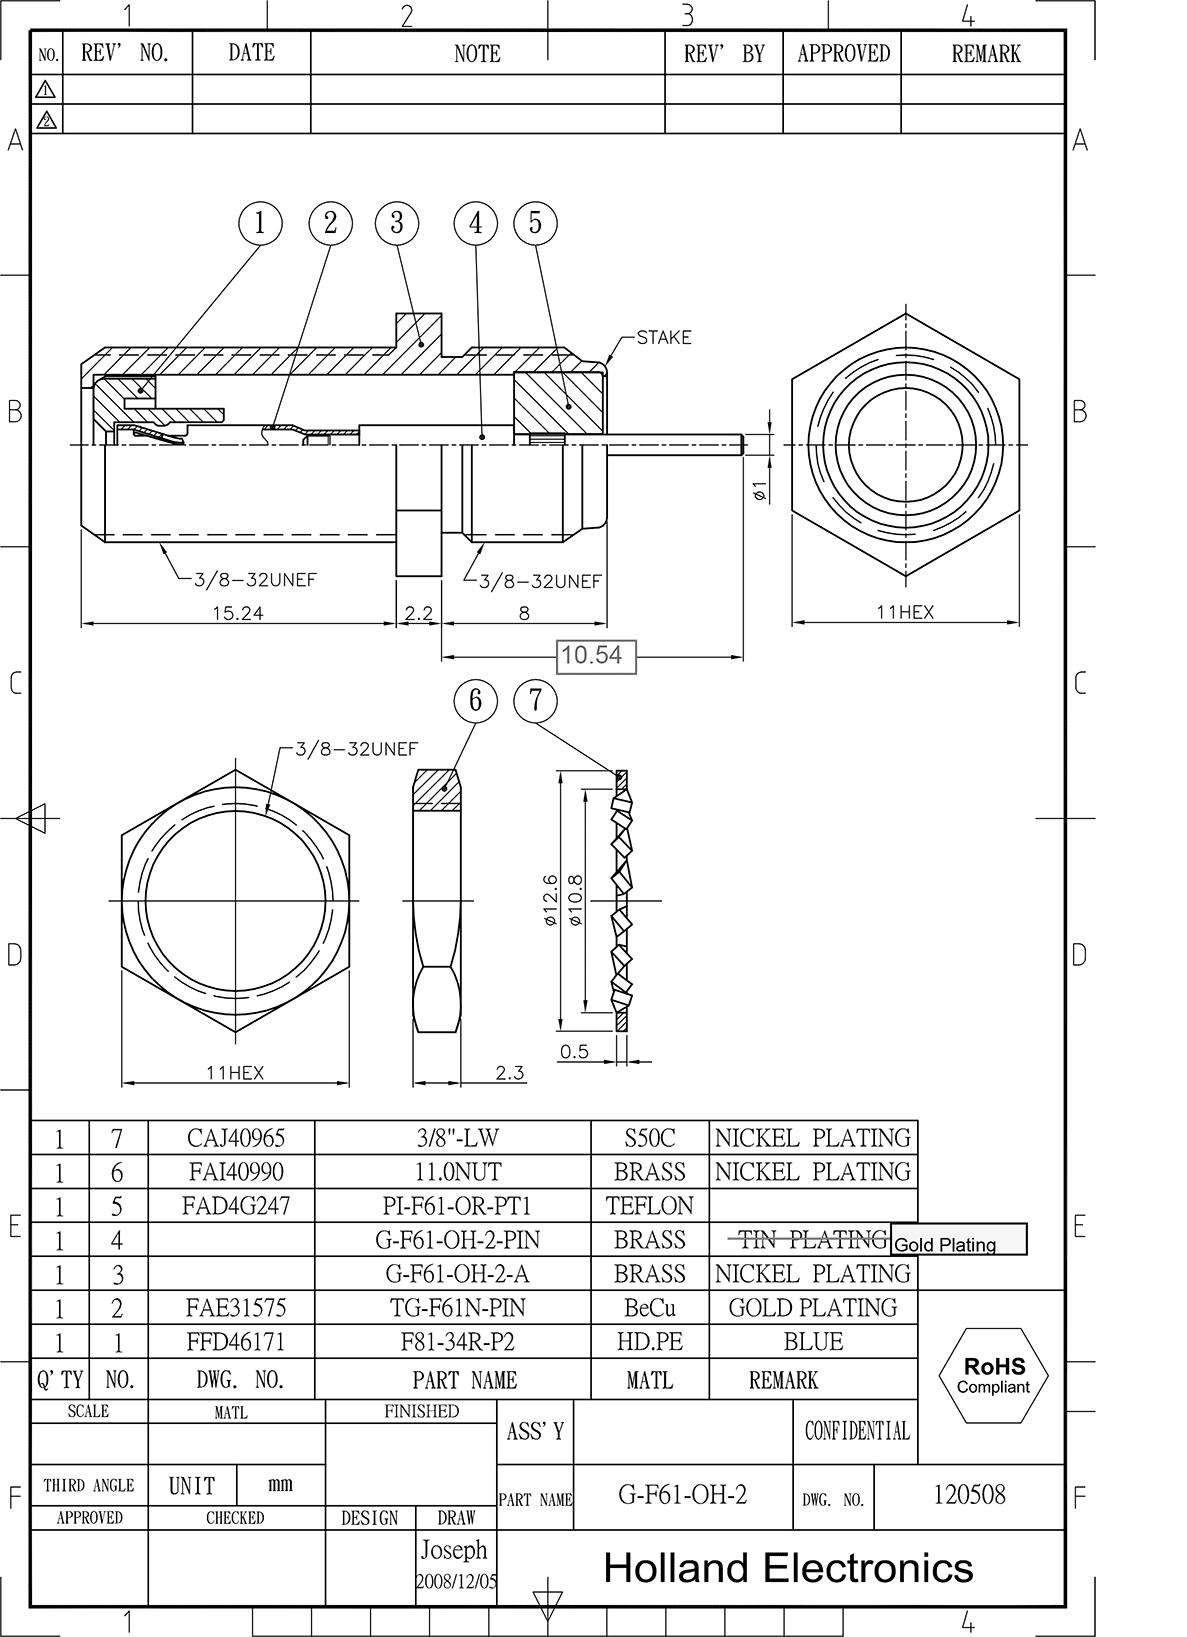 g-f61-oh-cad4.png